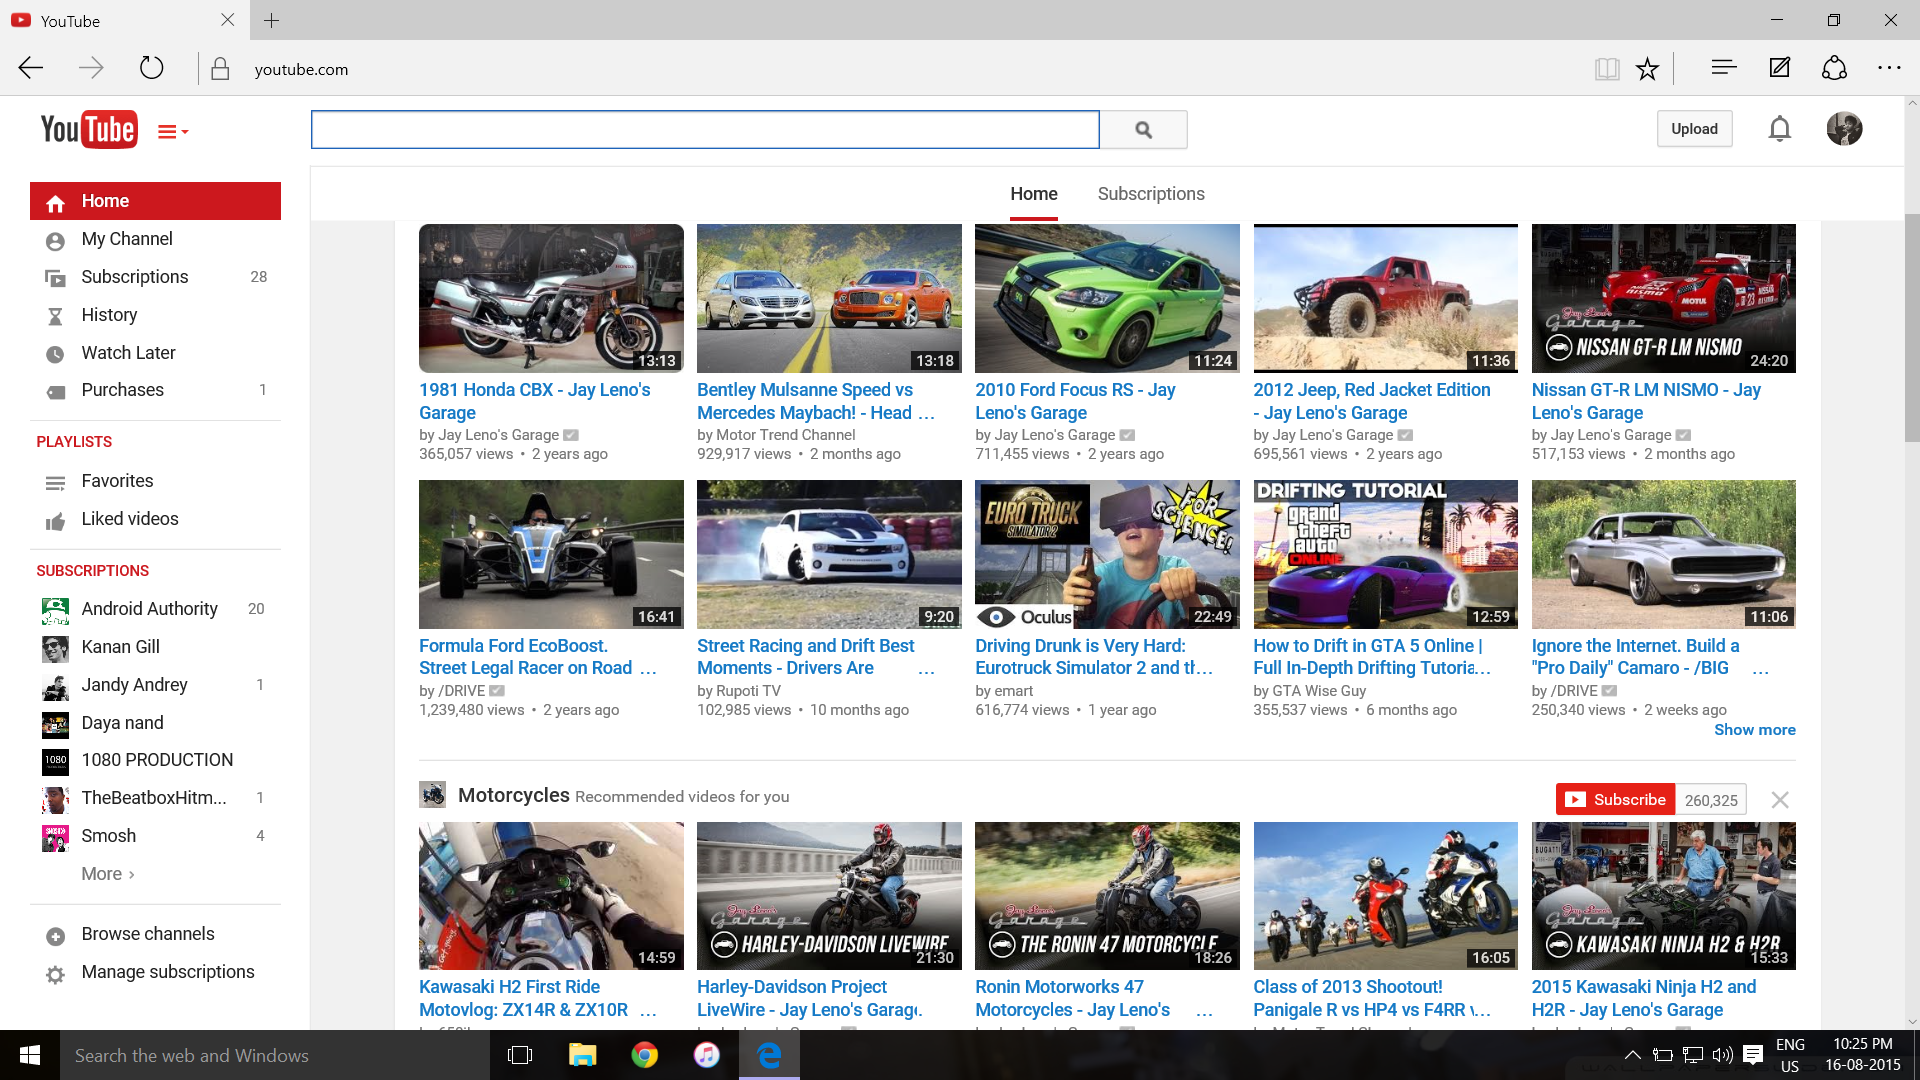 When Your Youtube Homepage Content Is Filled With Car Bike Videos Justpetrolheadthings